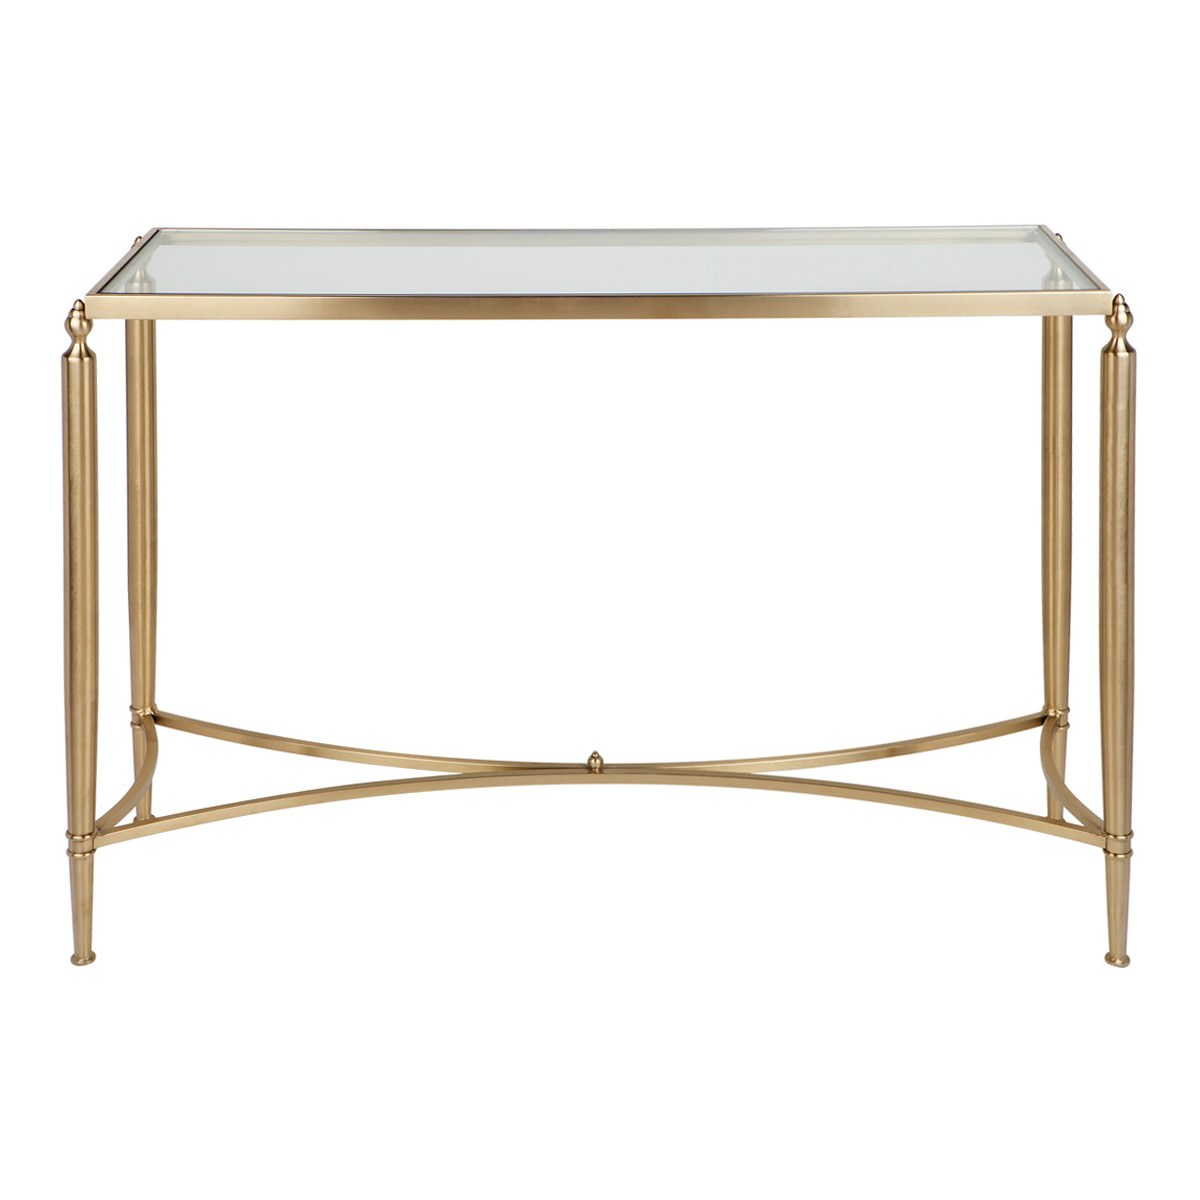 Jacques Glass Top Stainless Steel Console Table, 124cm, Gold